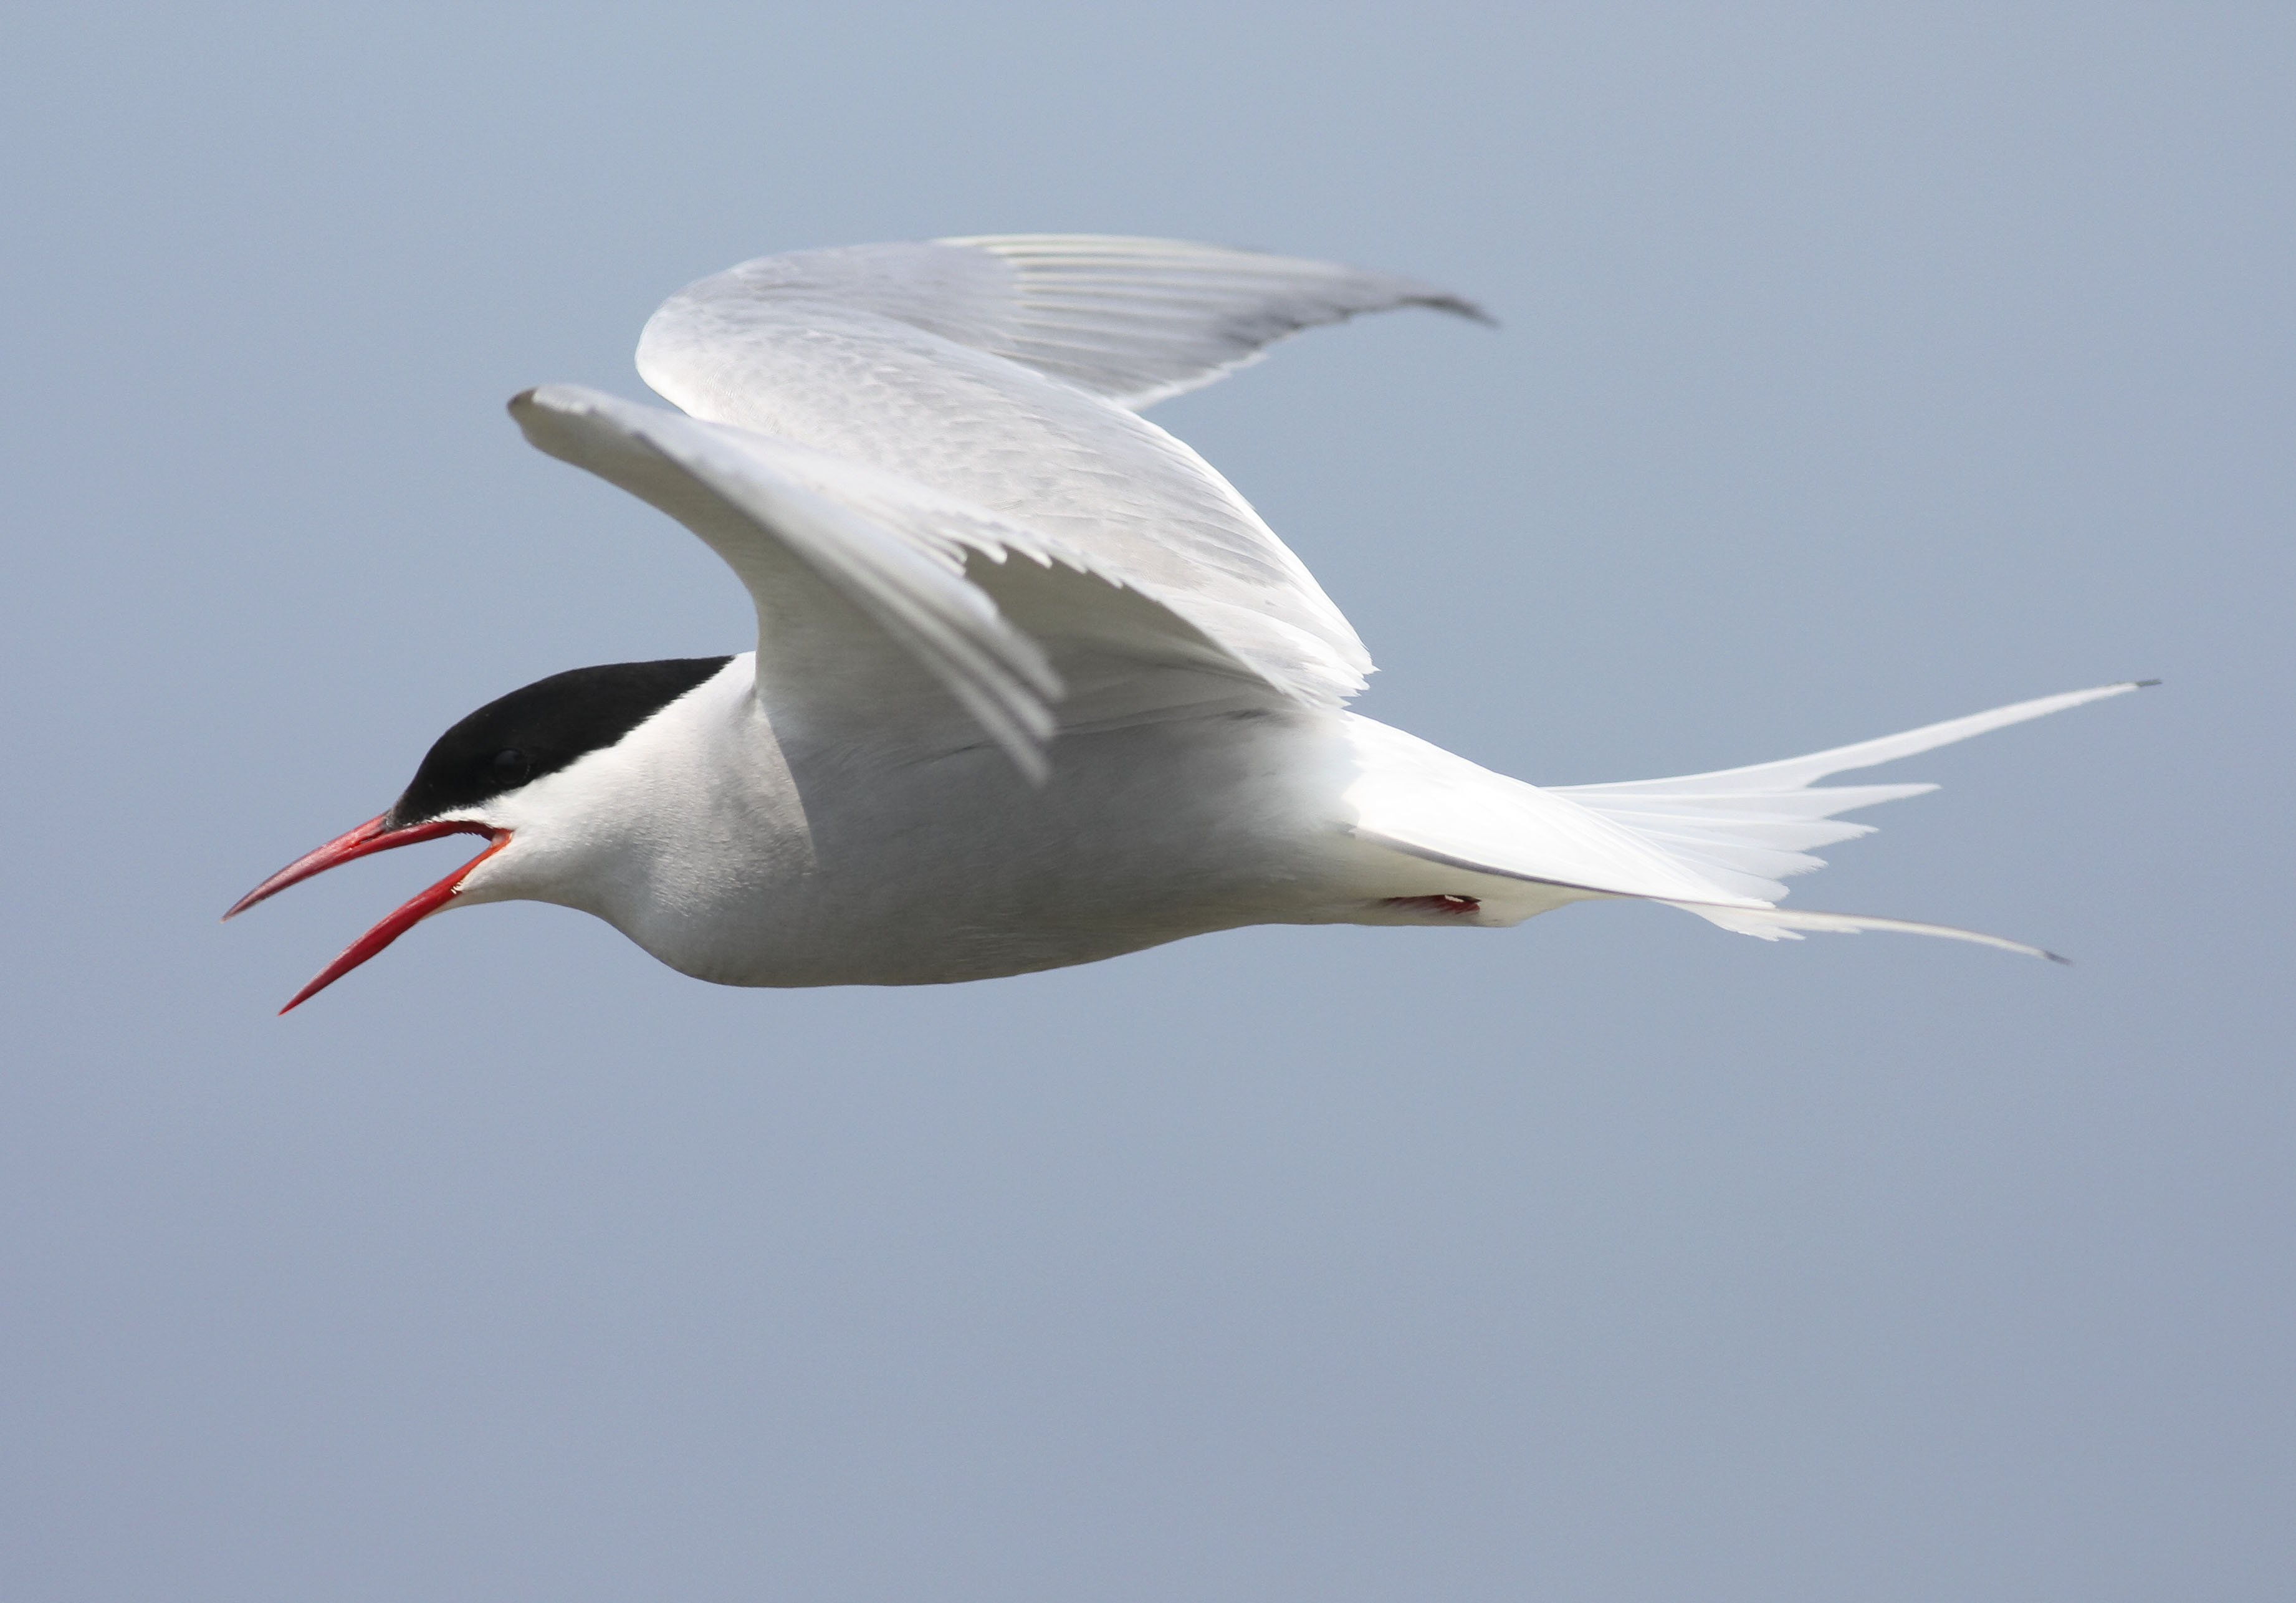 ARCTIC-TERN arctic tern bird wallpaper | 3684x2572 ...